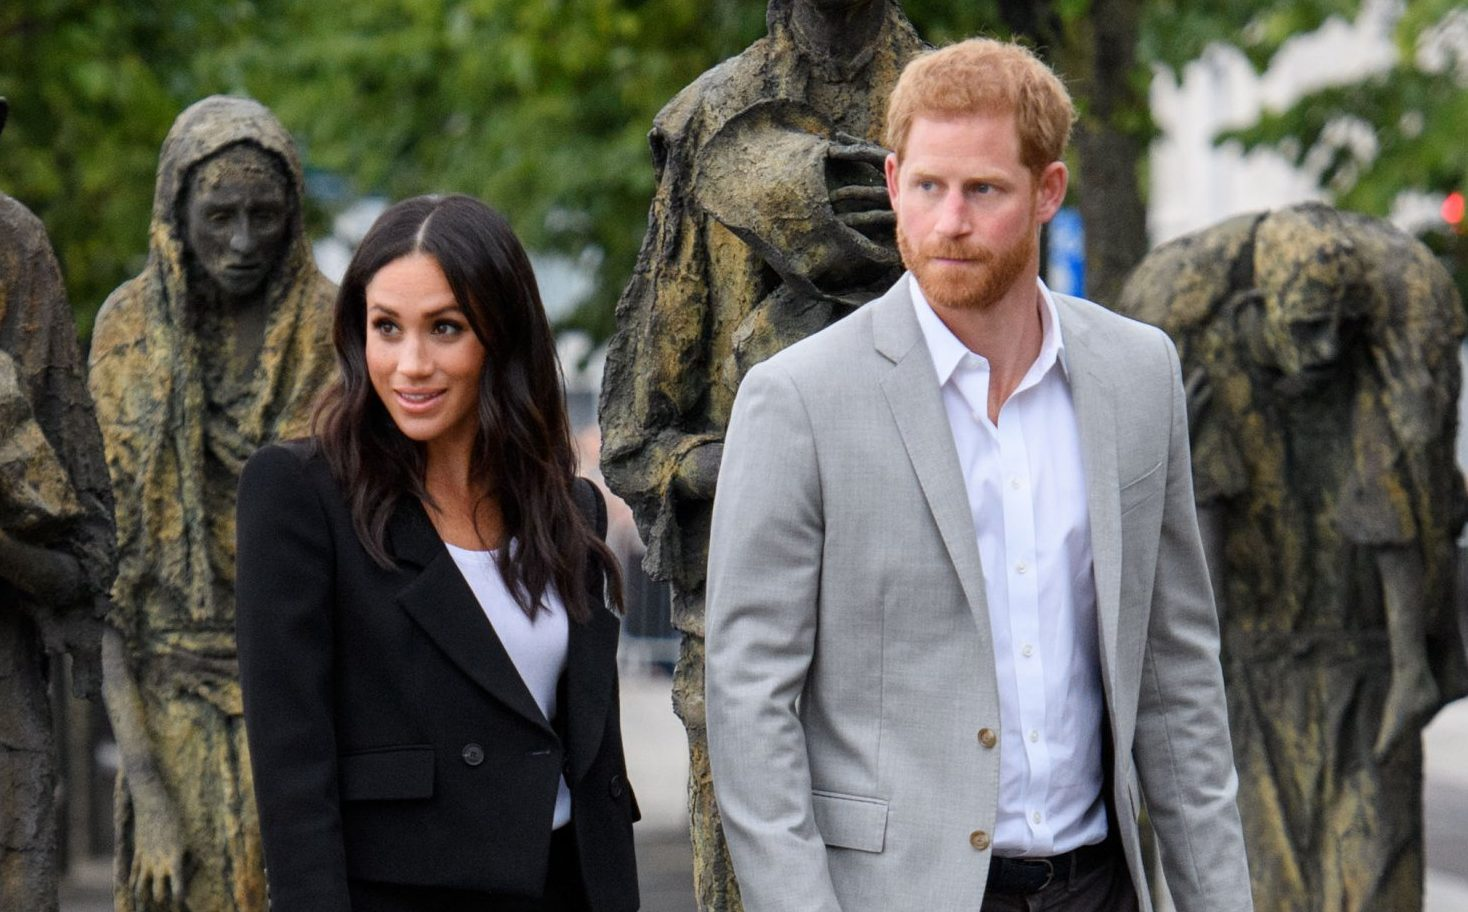 Mandatory Credit: Photo by Tim Rooke/REX/Shutterstock (9754621cs) Meghan Duchess of Sussex and Prince Harry visit the Famine Memorial Prince Harry and Meghan Duchess of Sussex visit to Dublin, Ireland - 11 Jul 2018